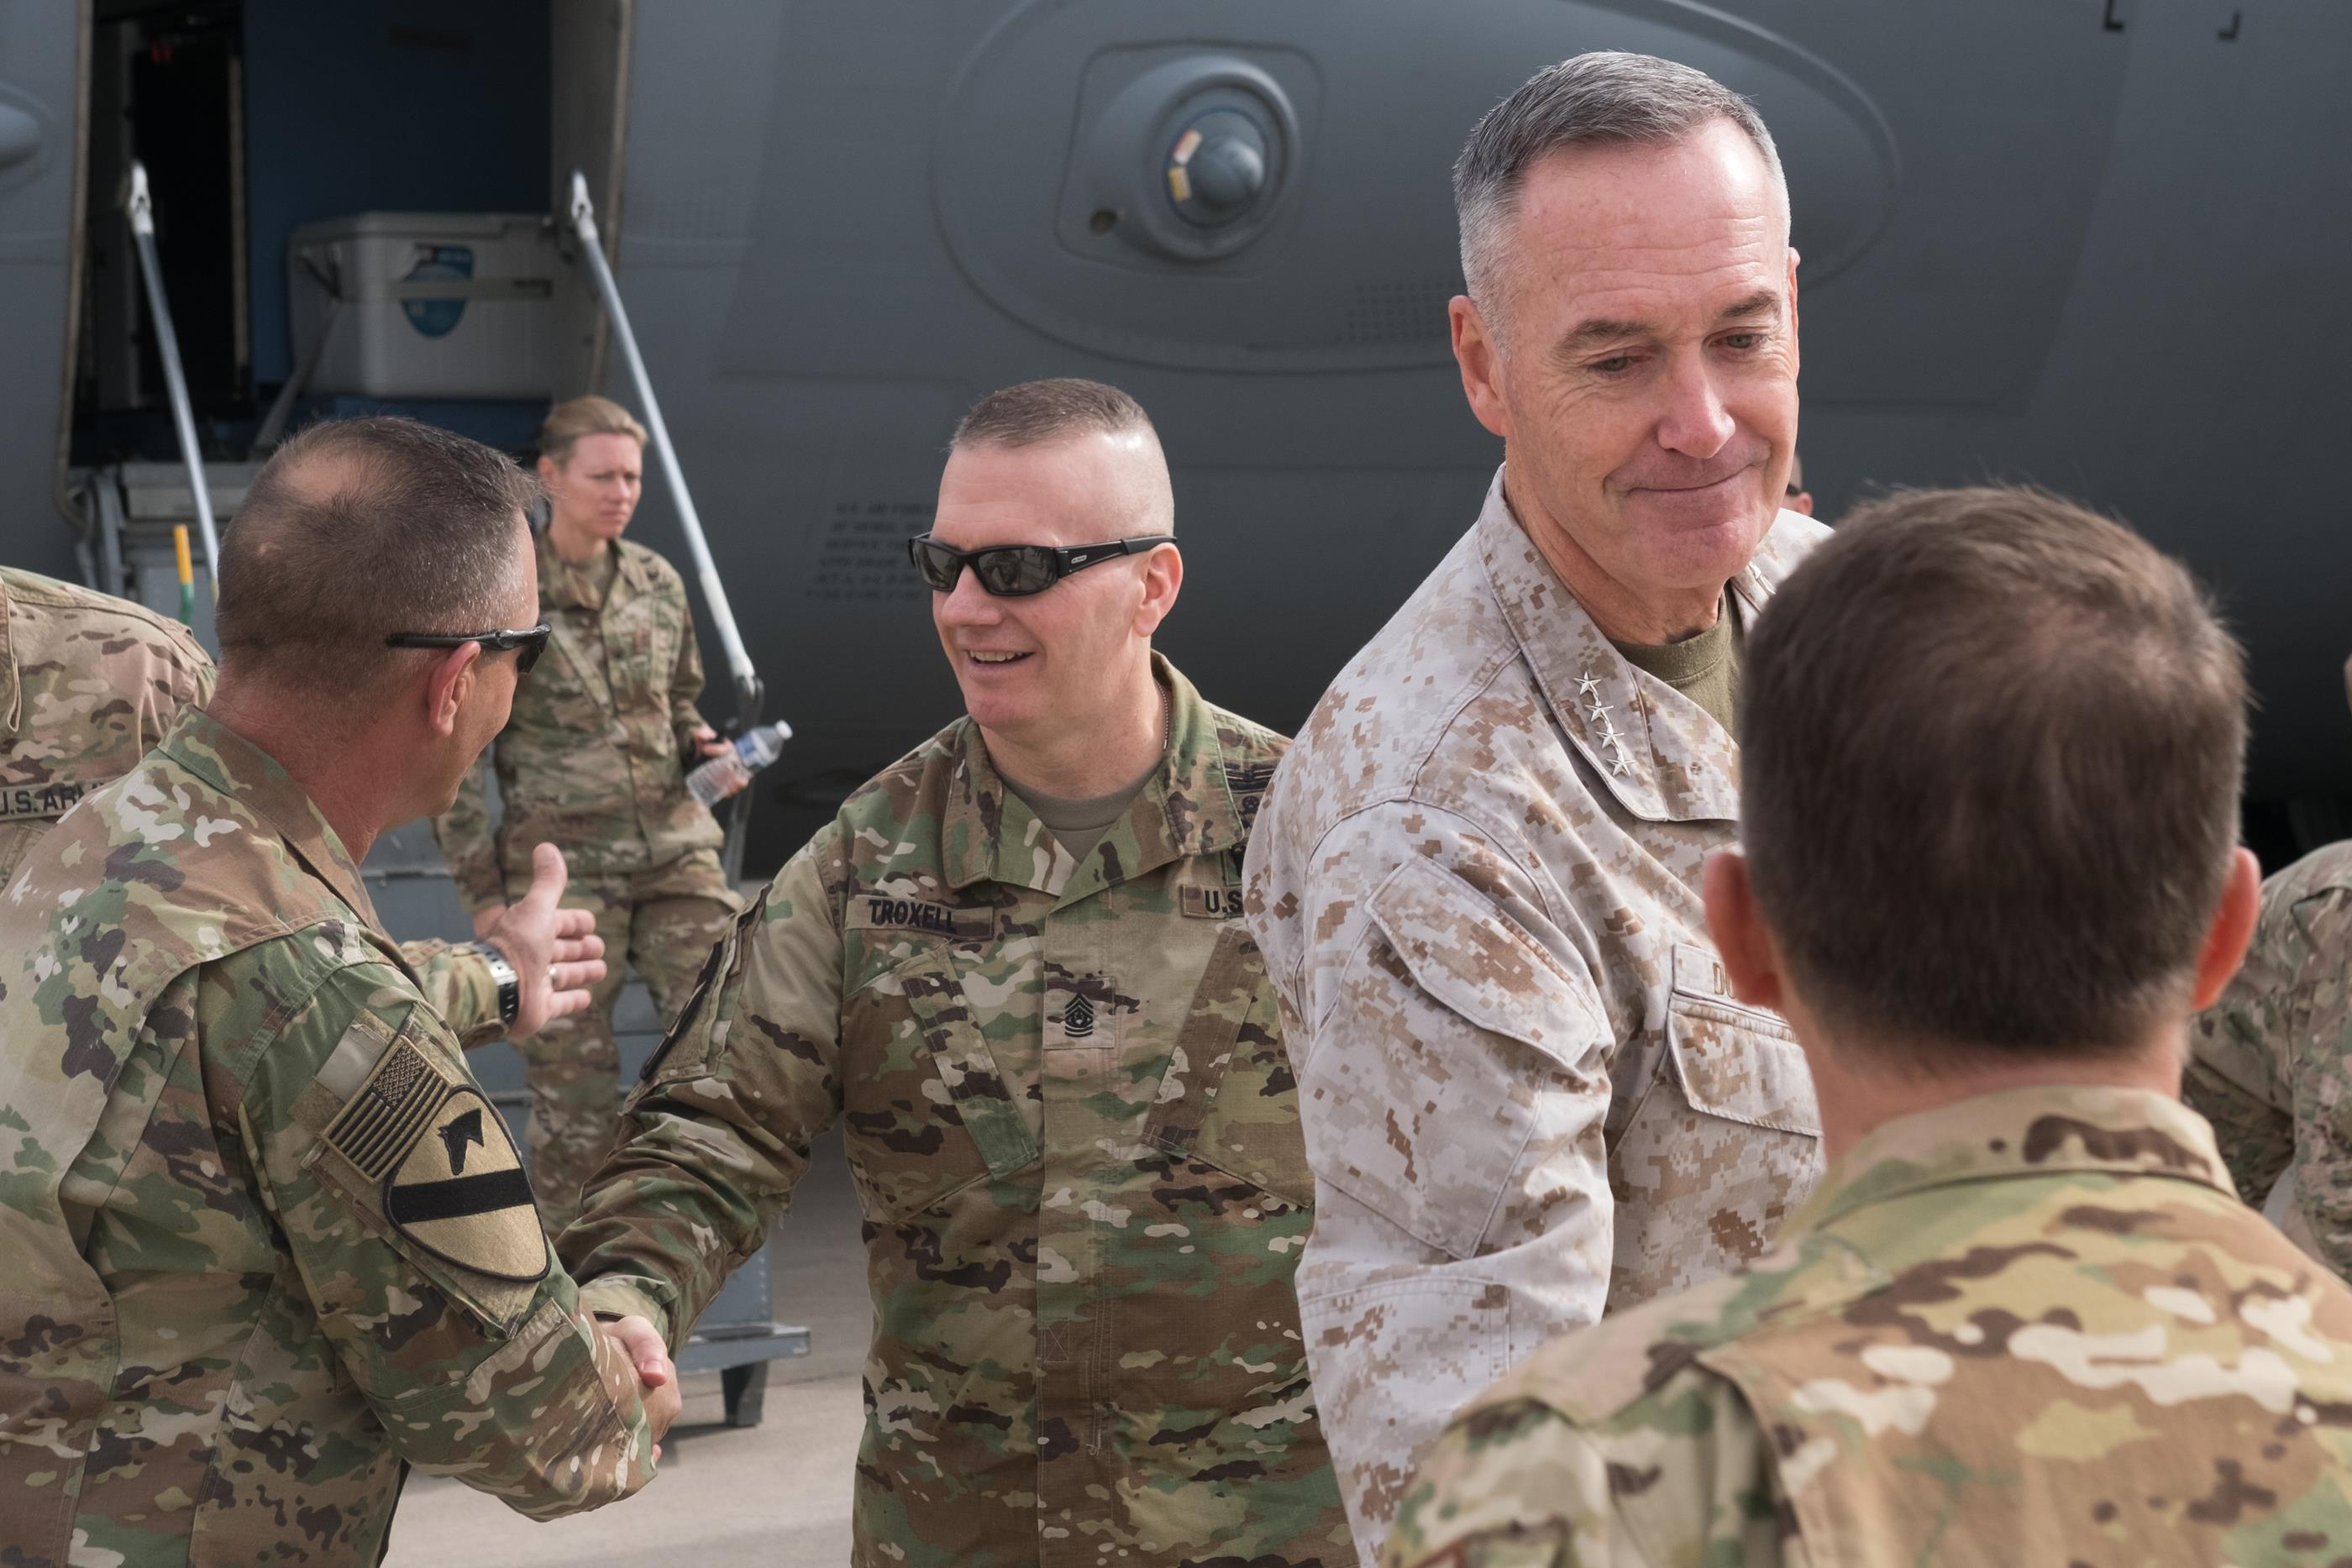 Marine Corps Gen. Joe Dunford, chairman of the Joint Chiefs of Staff, and Army Lt. Gen. Stephen J. Townsend